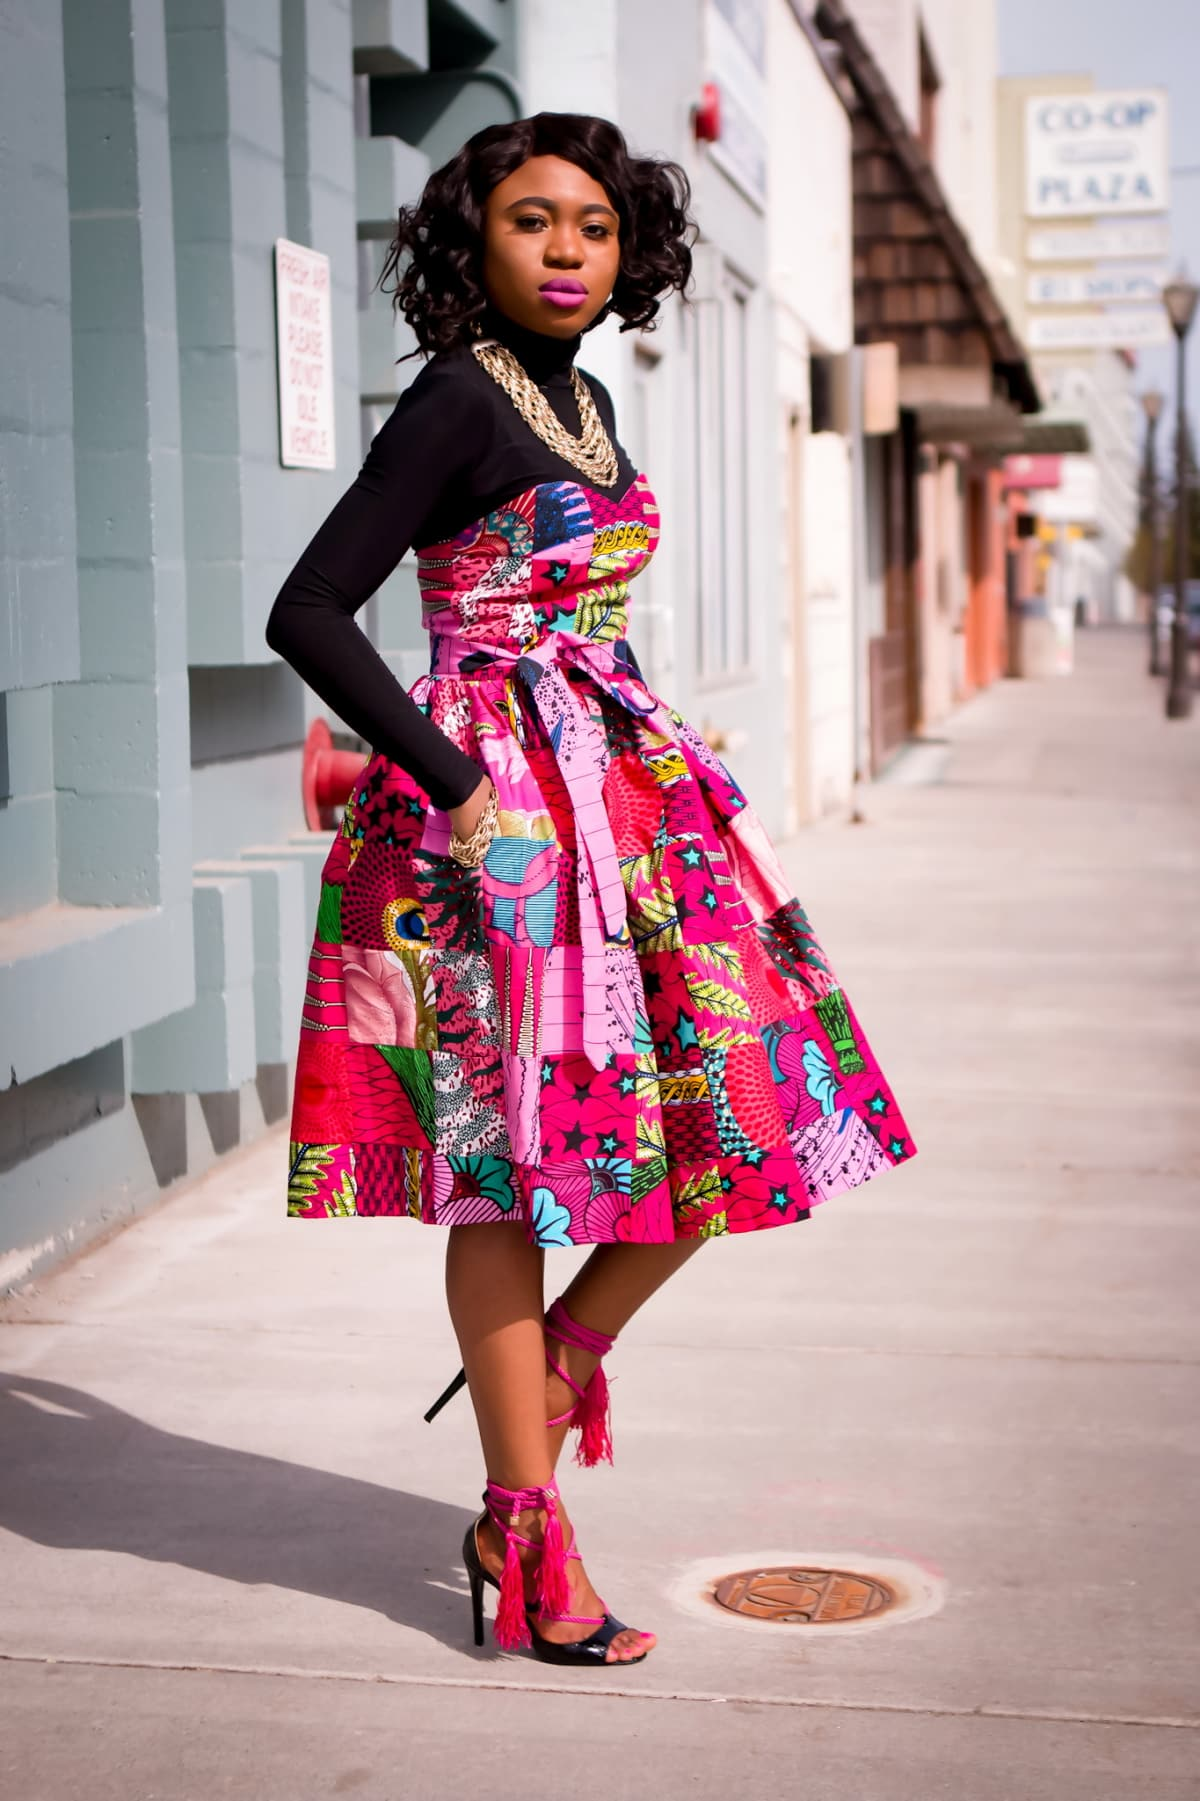 Looking for an African dress to wear to a special occasion? You'll love this midi dress styled by Louisa of La Passion Voutee. Get the scoop about this dress and details on where to get this stunning African attire.